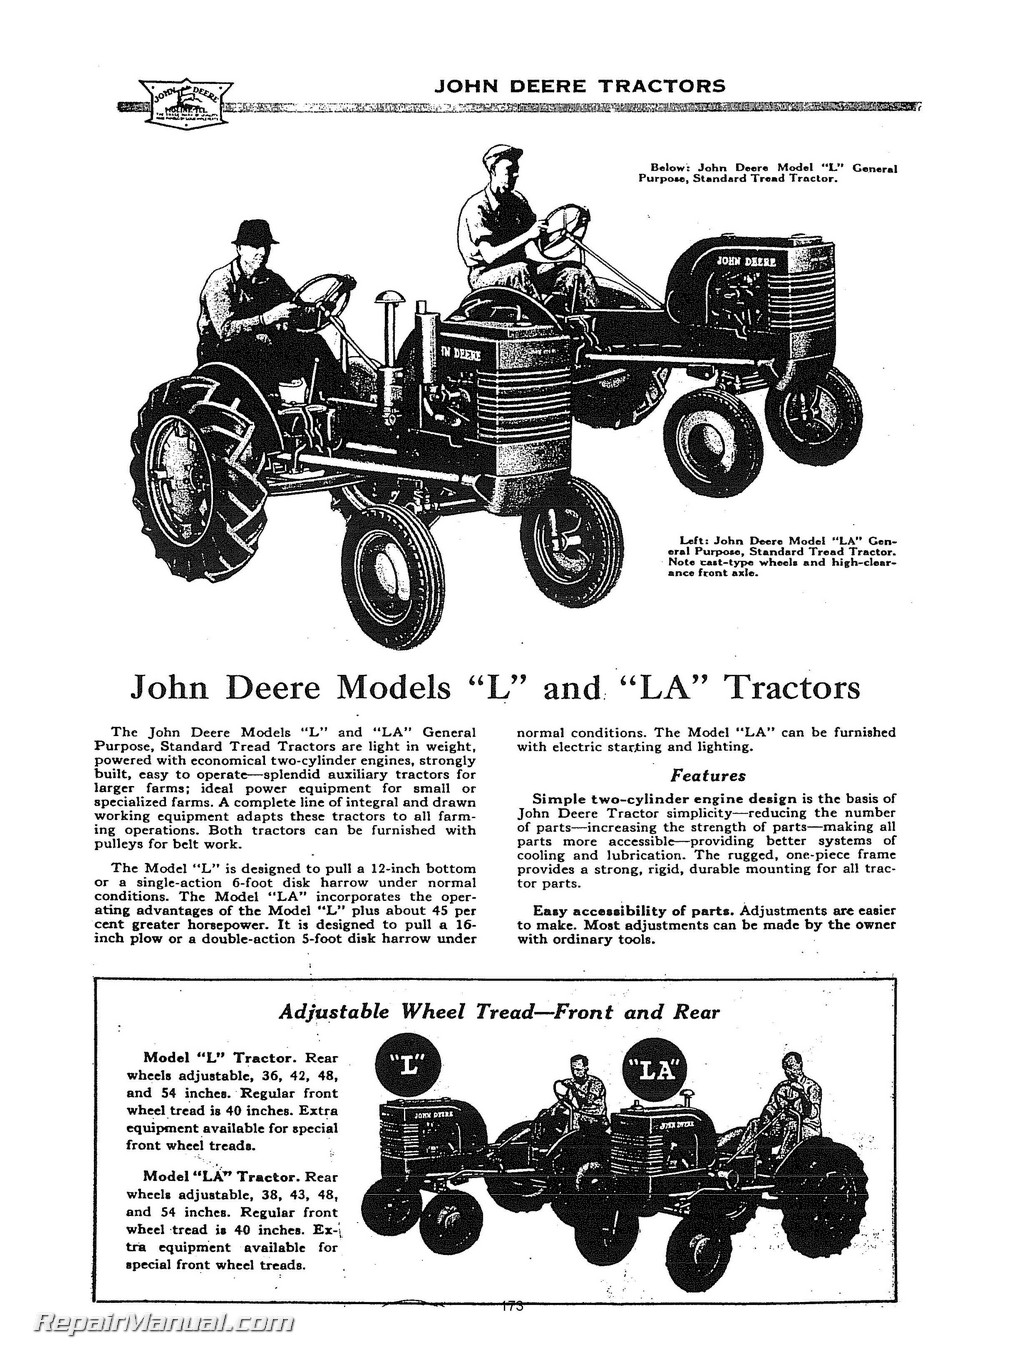 john deere l la li y 62 tractor service manual | ebay john deere l100 engine parts diagram electrical wiring john deere schematics engine 675cc #13